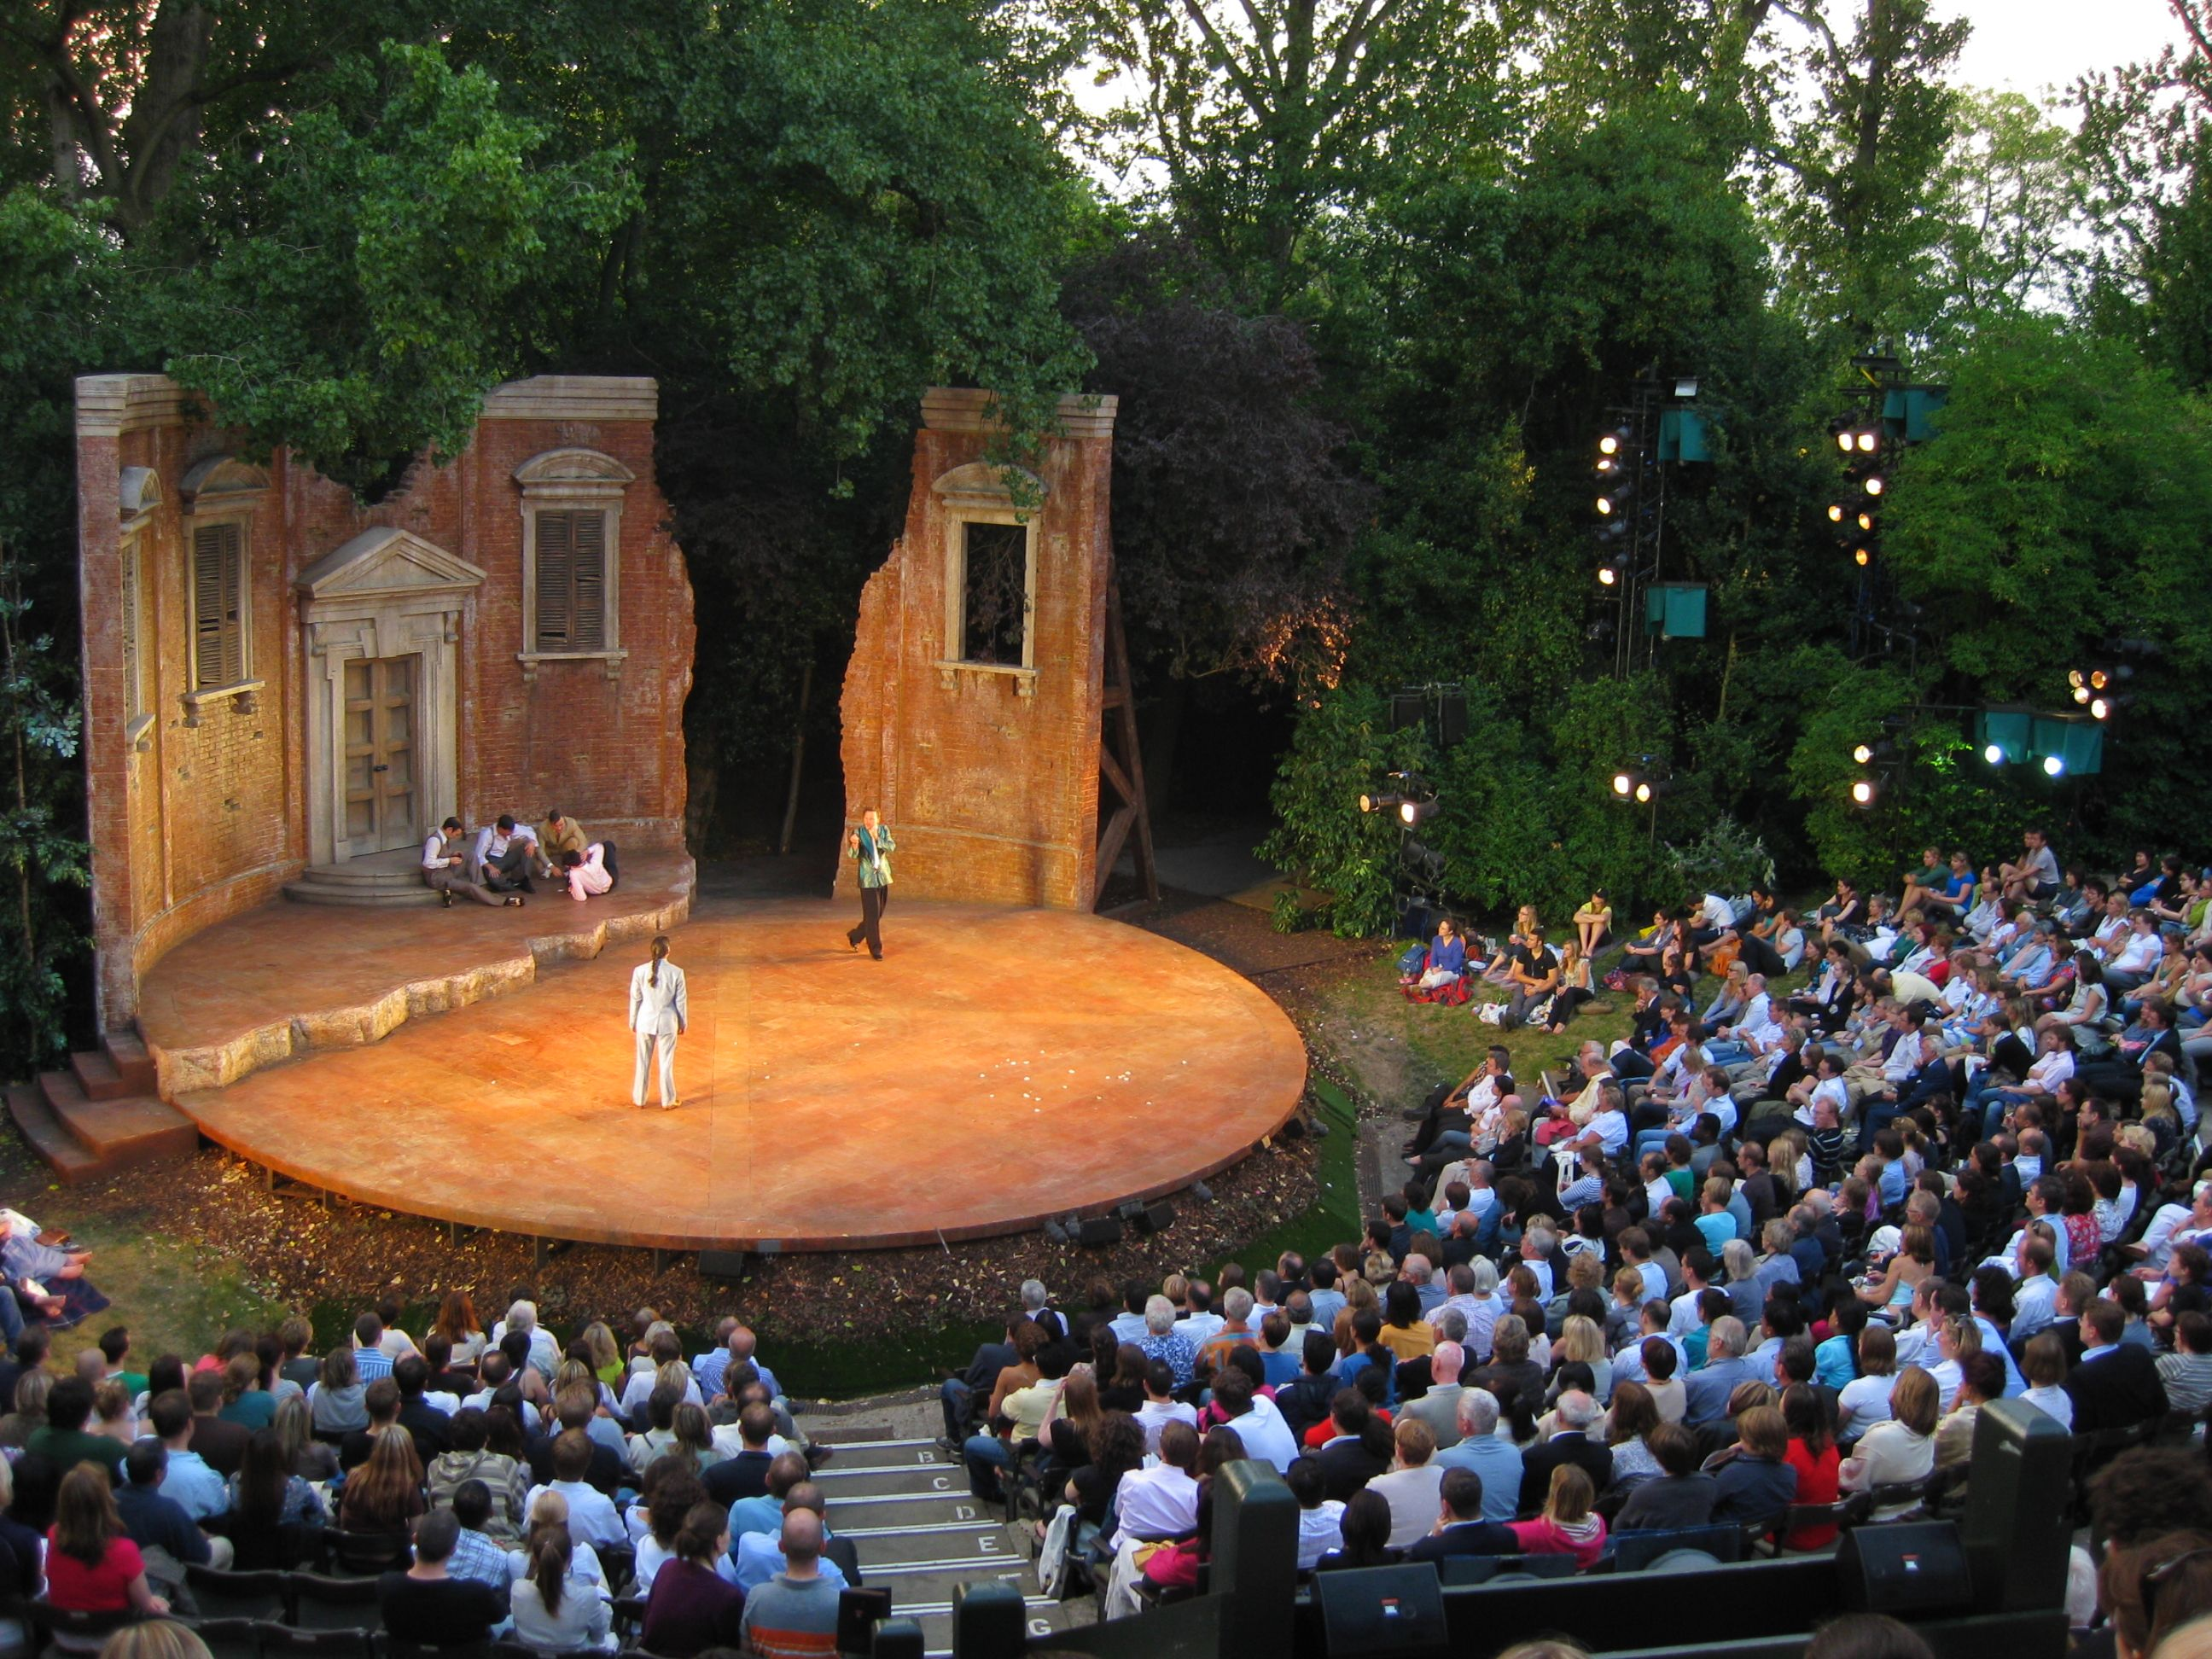 Open air theatre Outdoor stage, Amphitheater